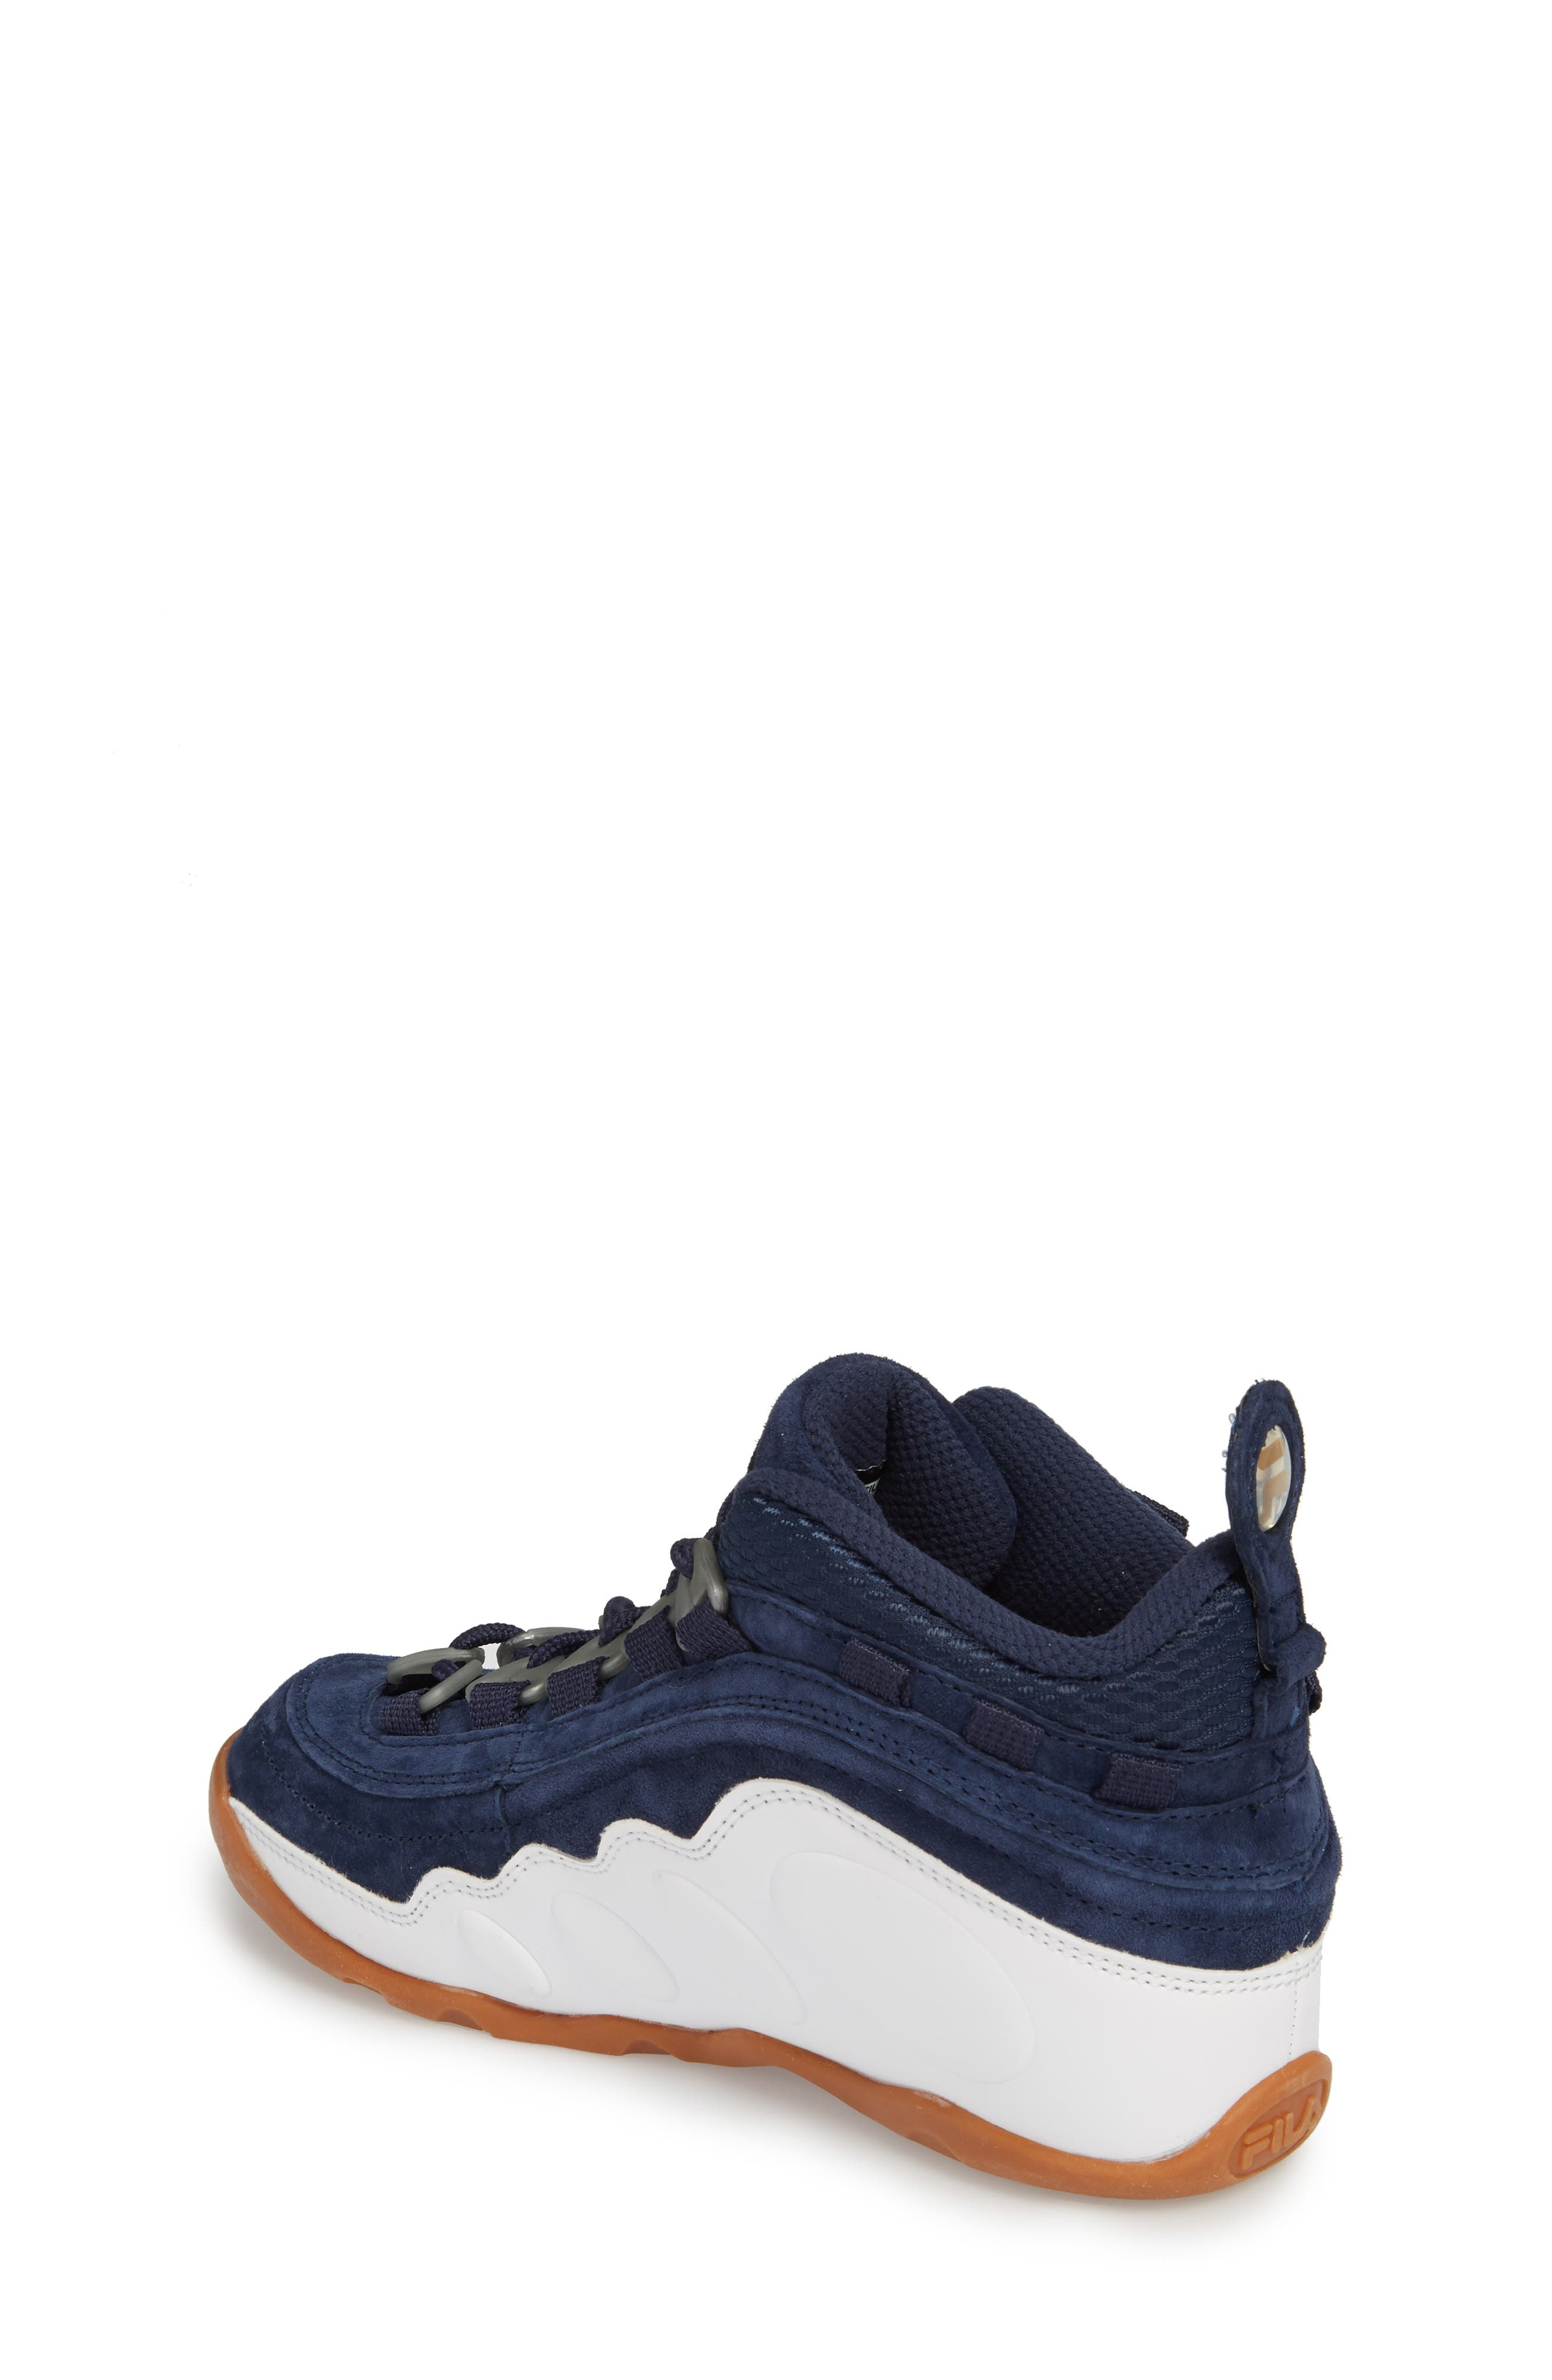 Bubbles Mid Top Sneaker Boot,                             Alternate thumbnail 2, color,                             NAVY/ GOLD/ WHITE